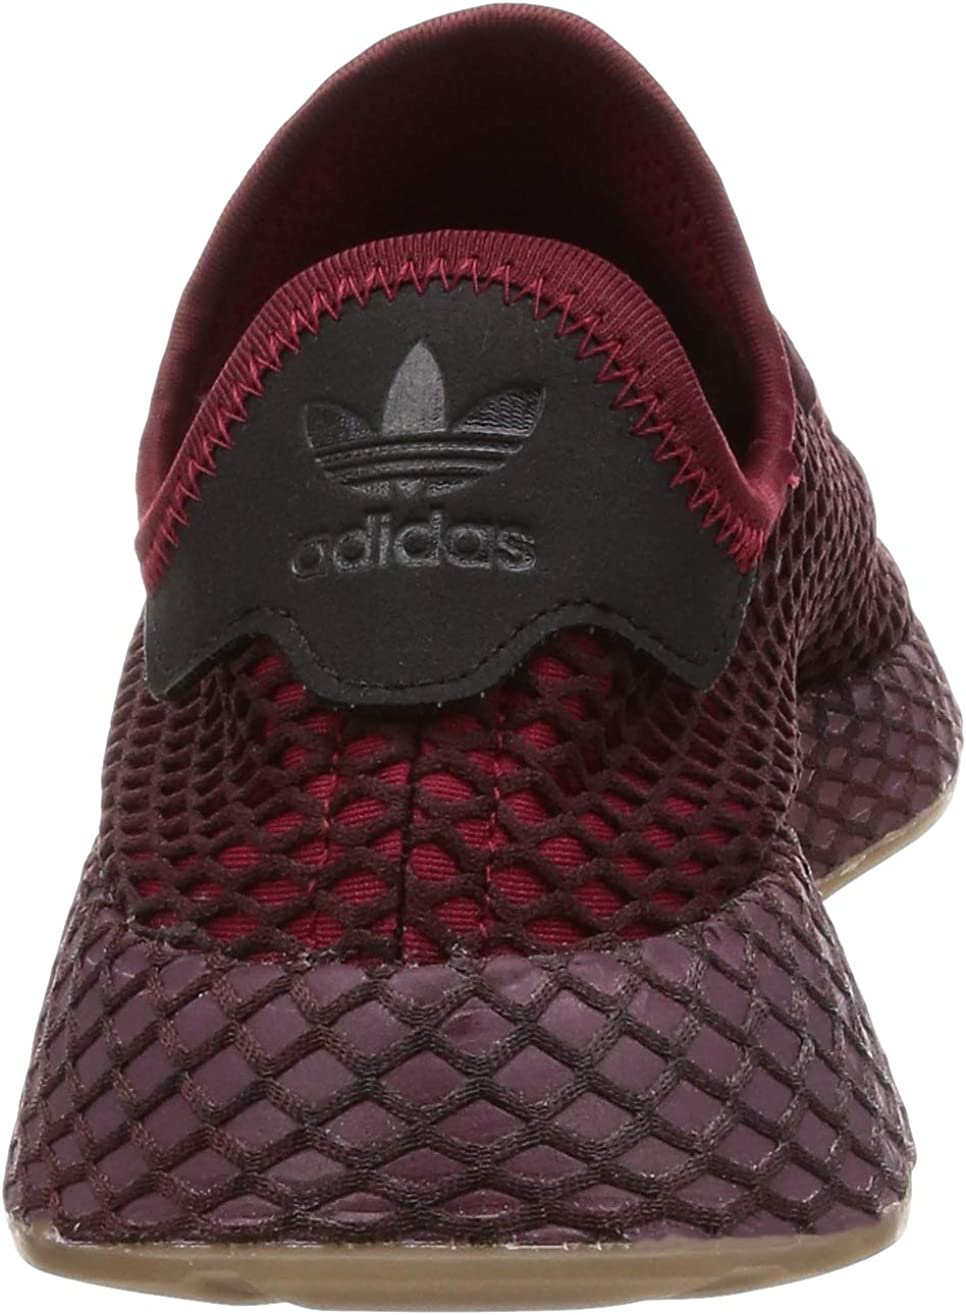 adidas Deerupt Runner, Chaussures de Gymnastique Homme Rouge Collegiate Burgundy Collegiate Burgundy Ash Green S18